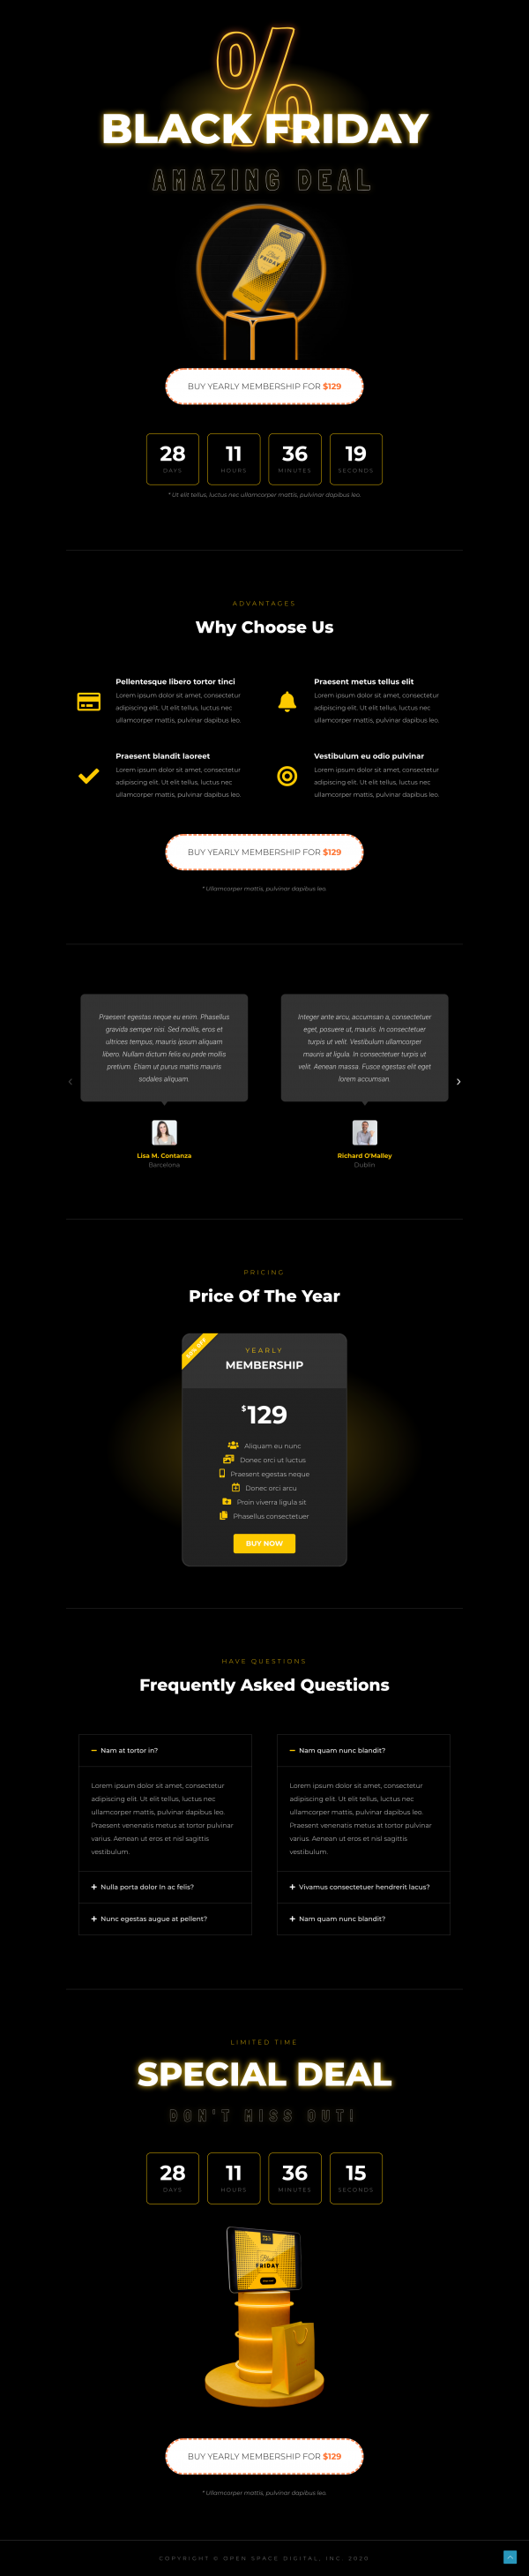 openspacedigital-black-friday-landing-page-2-2020